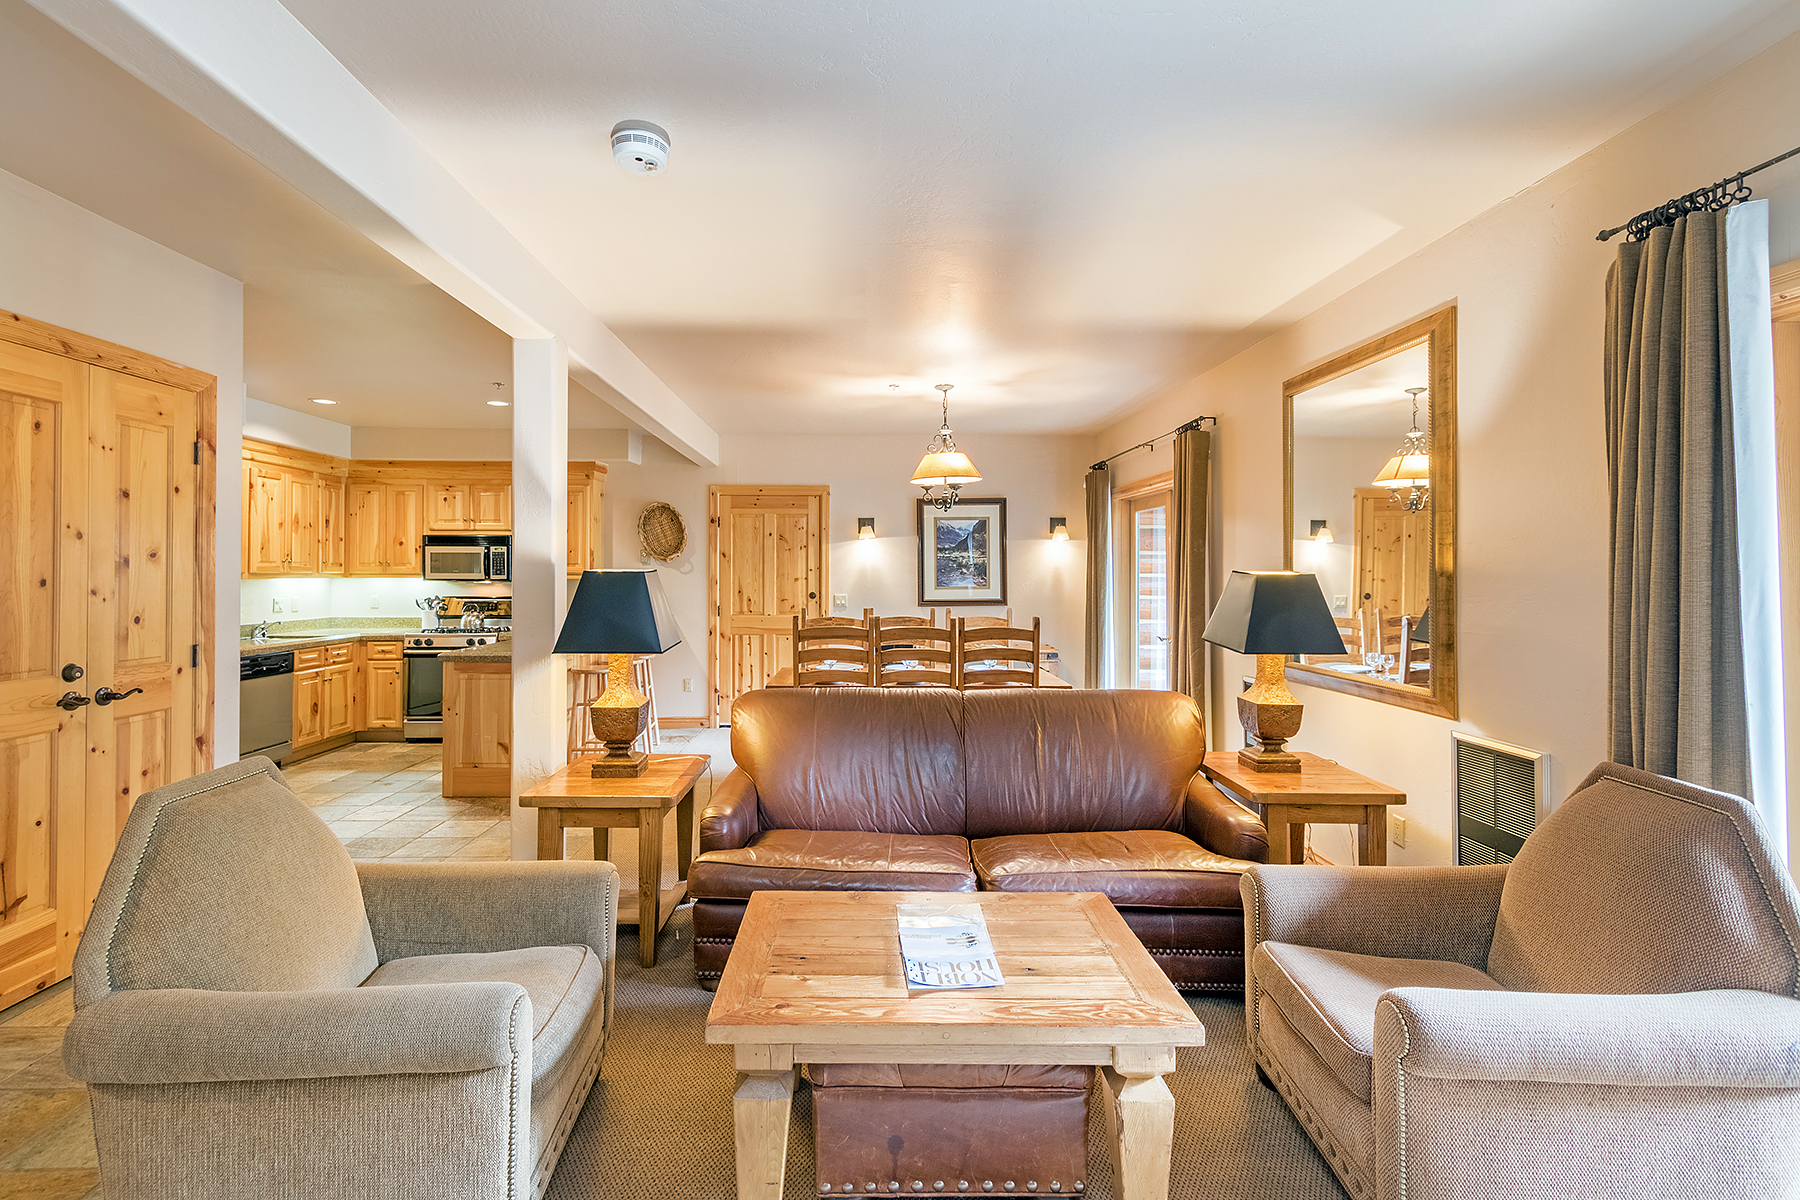 Condominio por un Venta en 41144116 Mountain Lodge 457 Mountain Village Blvd, Summit Suite 41144116 Telluride, Colorado, 81435 Estados Unidos